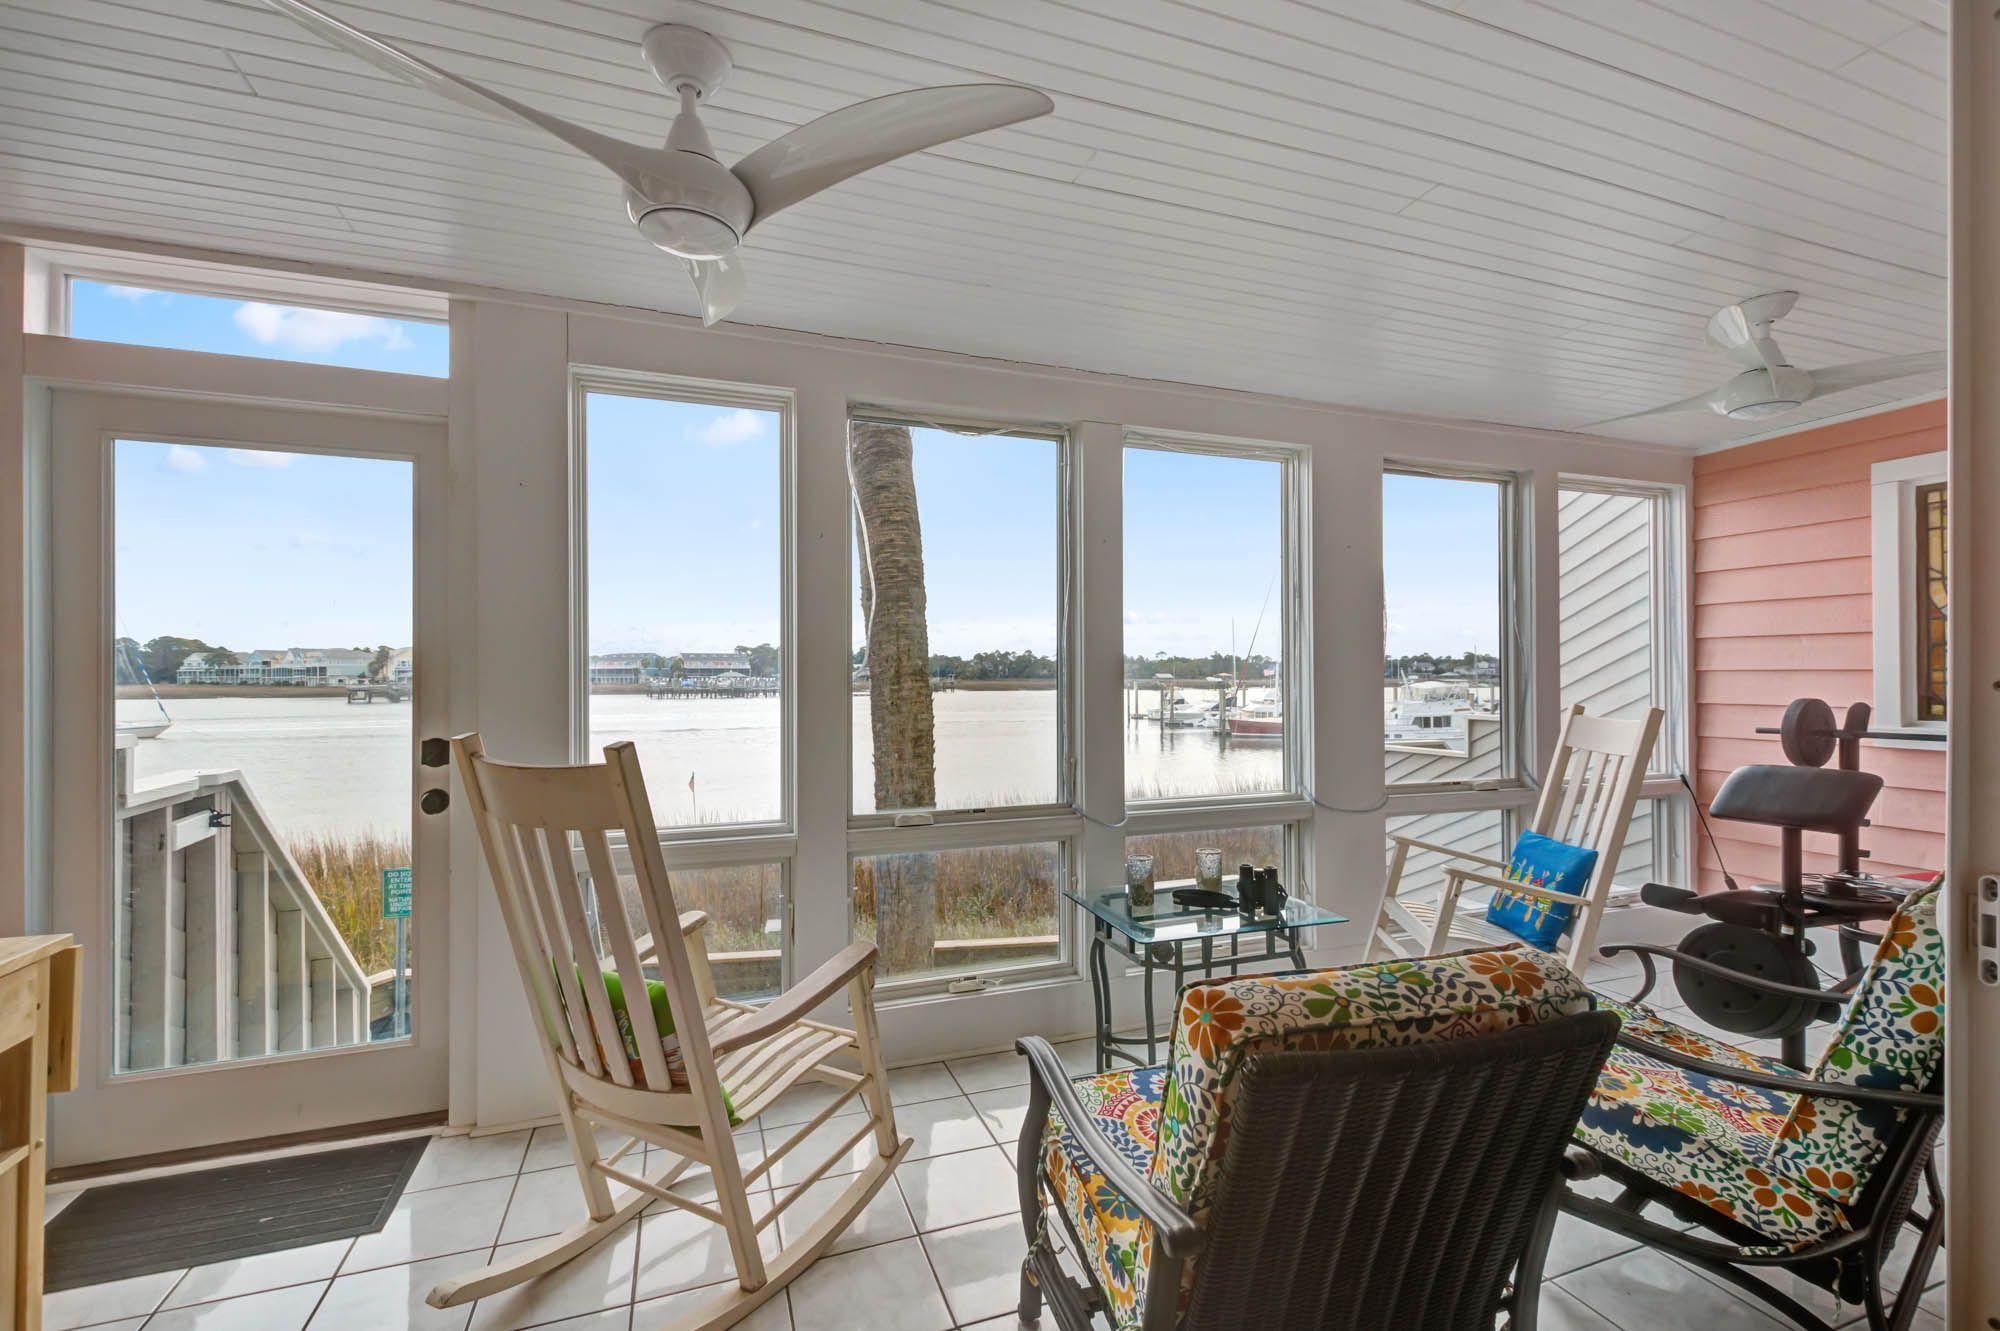 Mariners Cay Homes For Sale - 43 Mariners Cay, Folly Beach, SC - 27